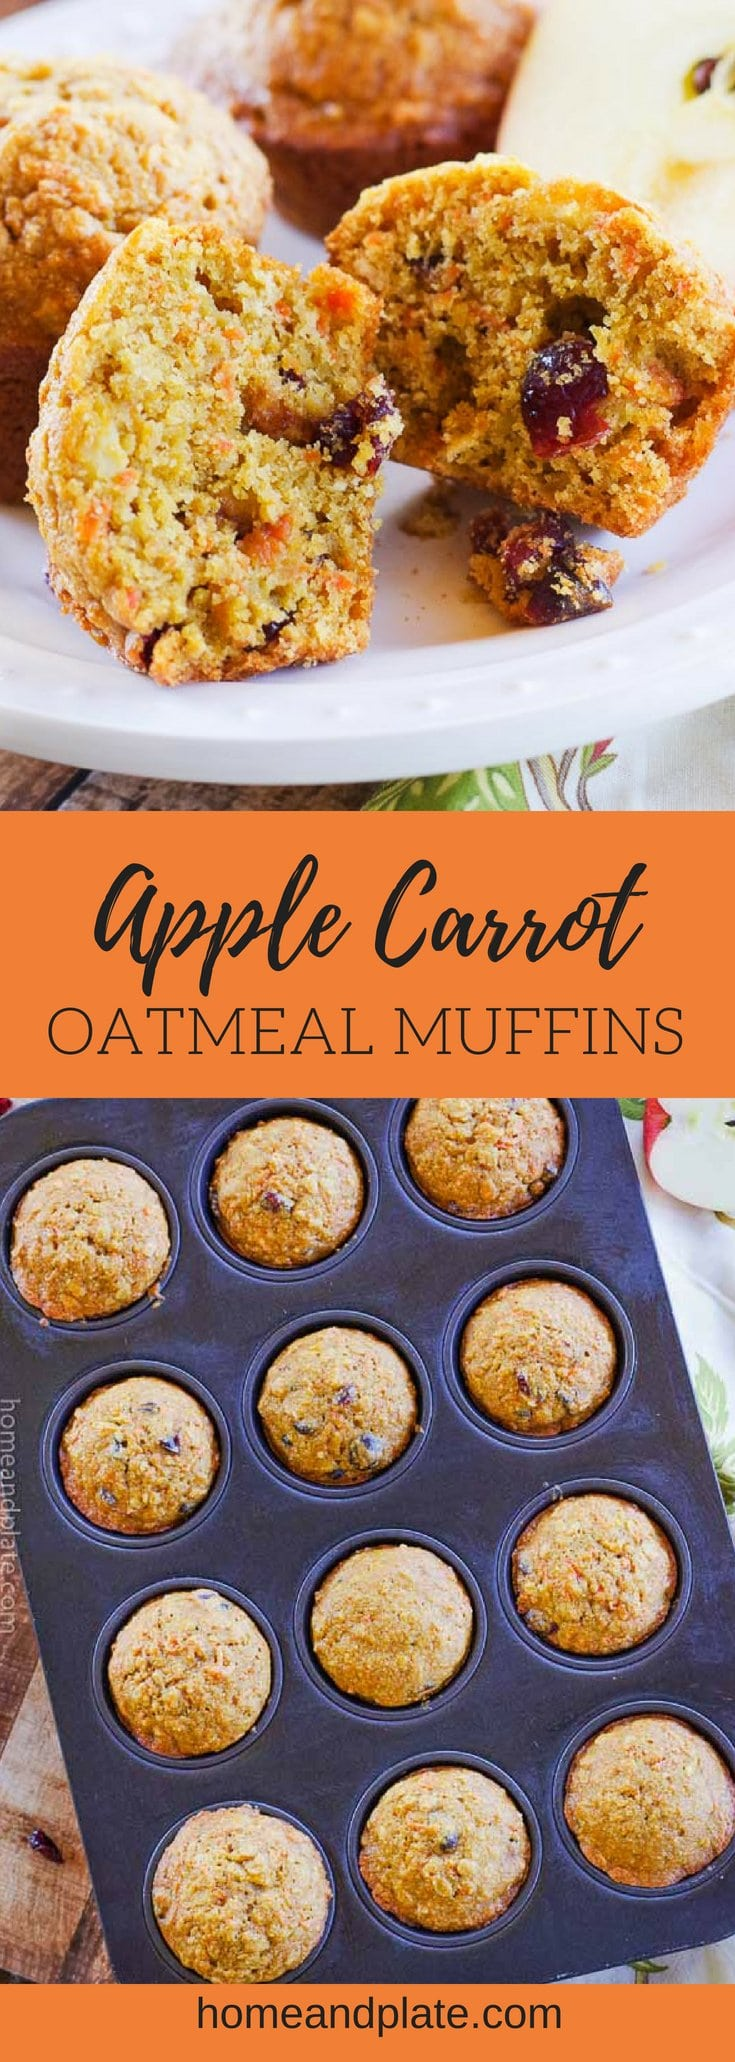 Apple Carrot Oatmeal Muffins | Soft and full of flavor, these apple carrot oatmeal muffins {a.k.a. morning glory muffins} feature whole wheat goodness to start your day. #muffins #morningglorymuffins #applecarrotoatmealmuffins #healthymuffins #homeandplate